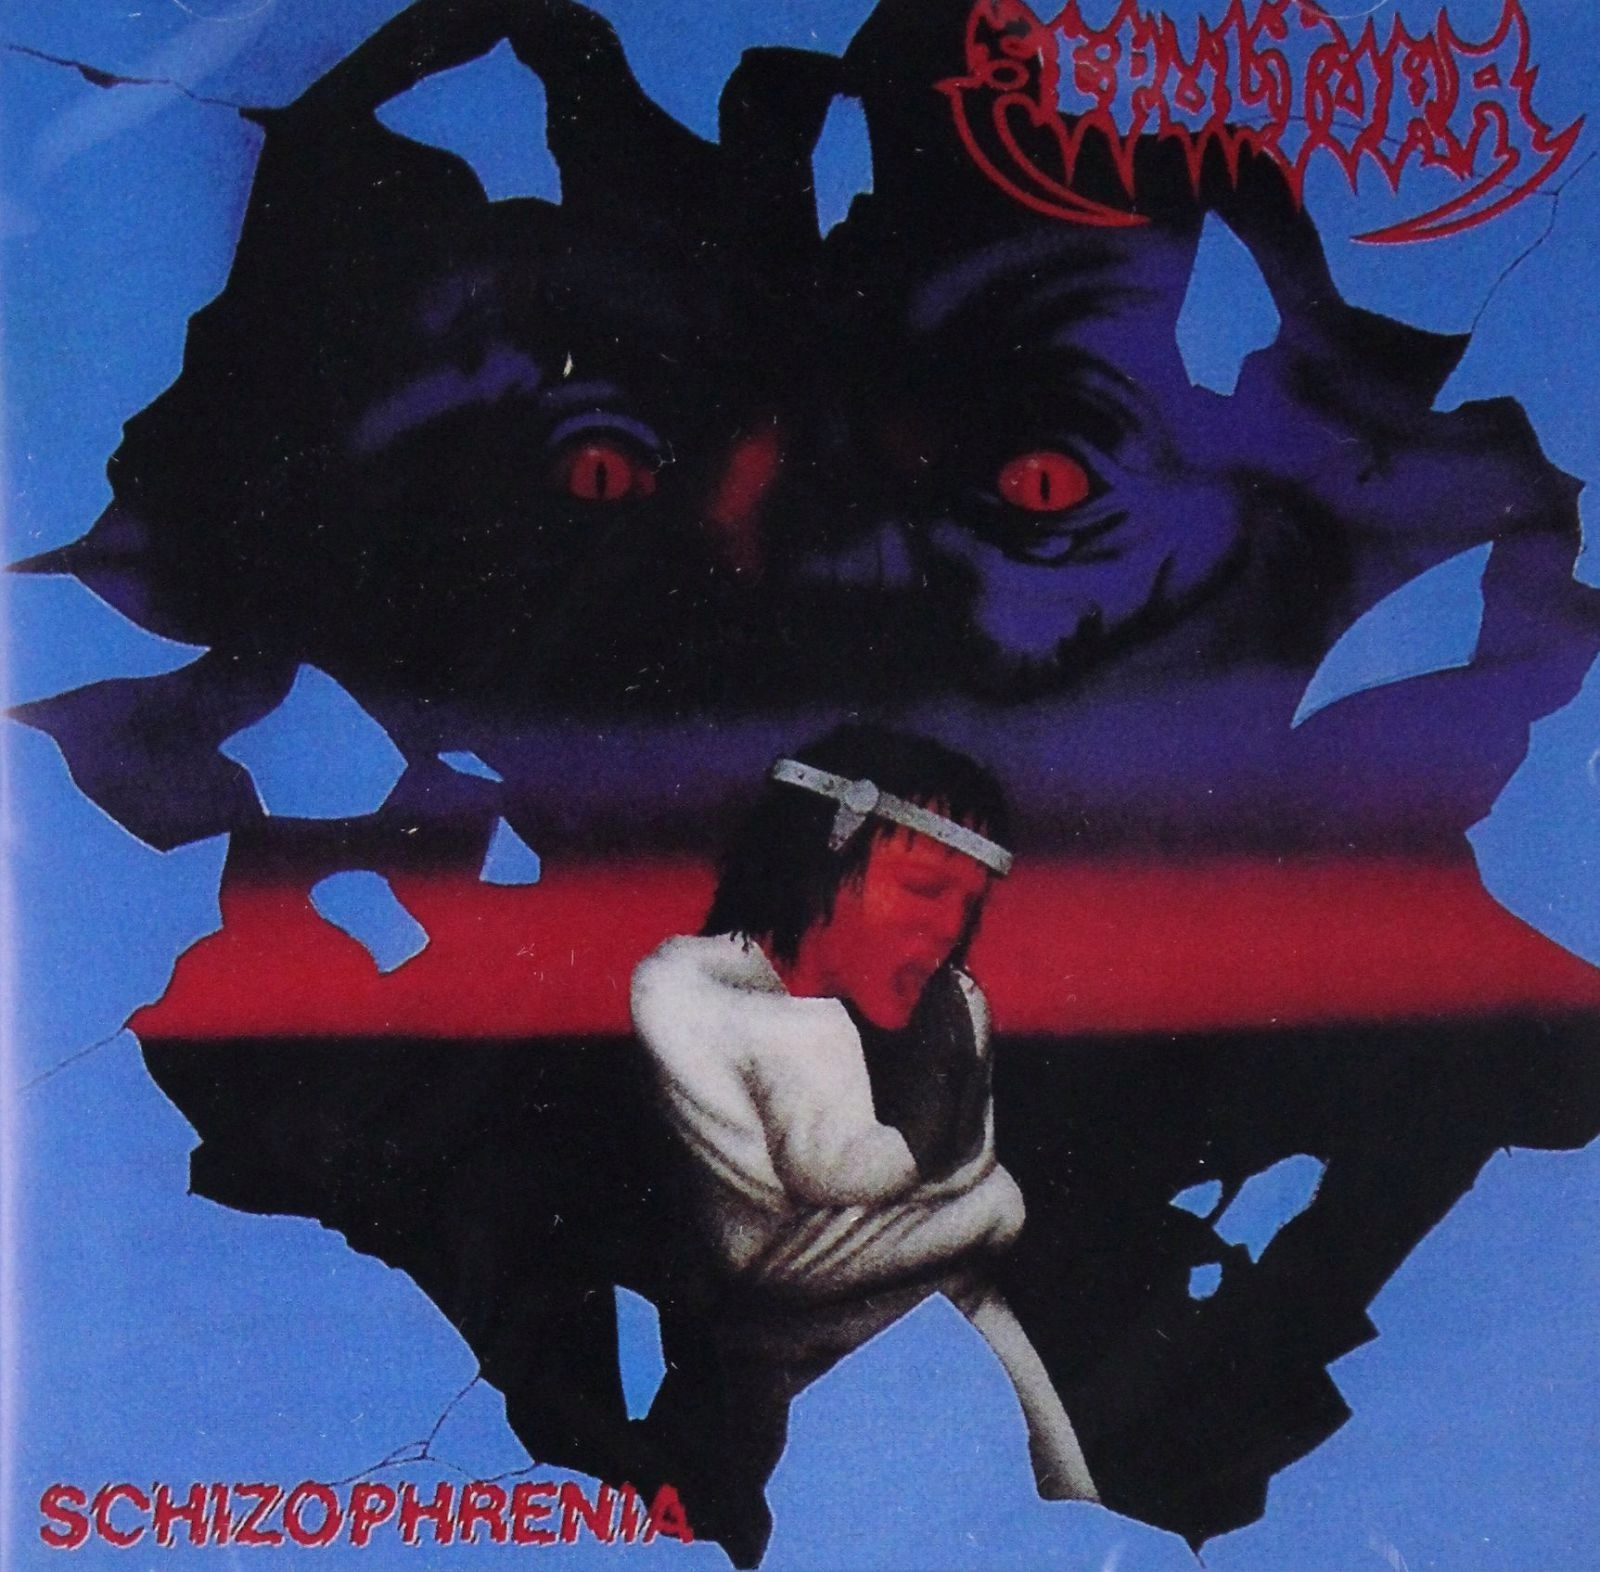 SEPULTURA SCHIZOPHRENIA CD